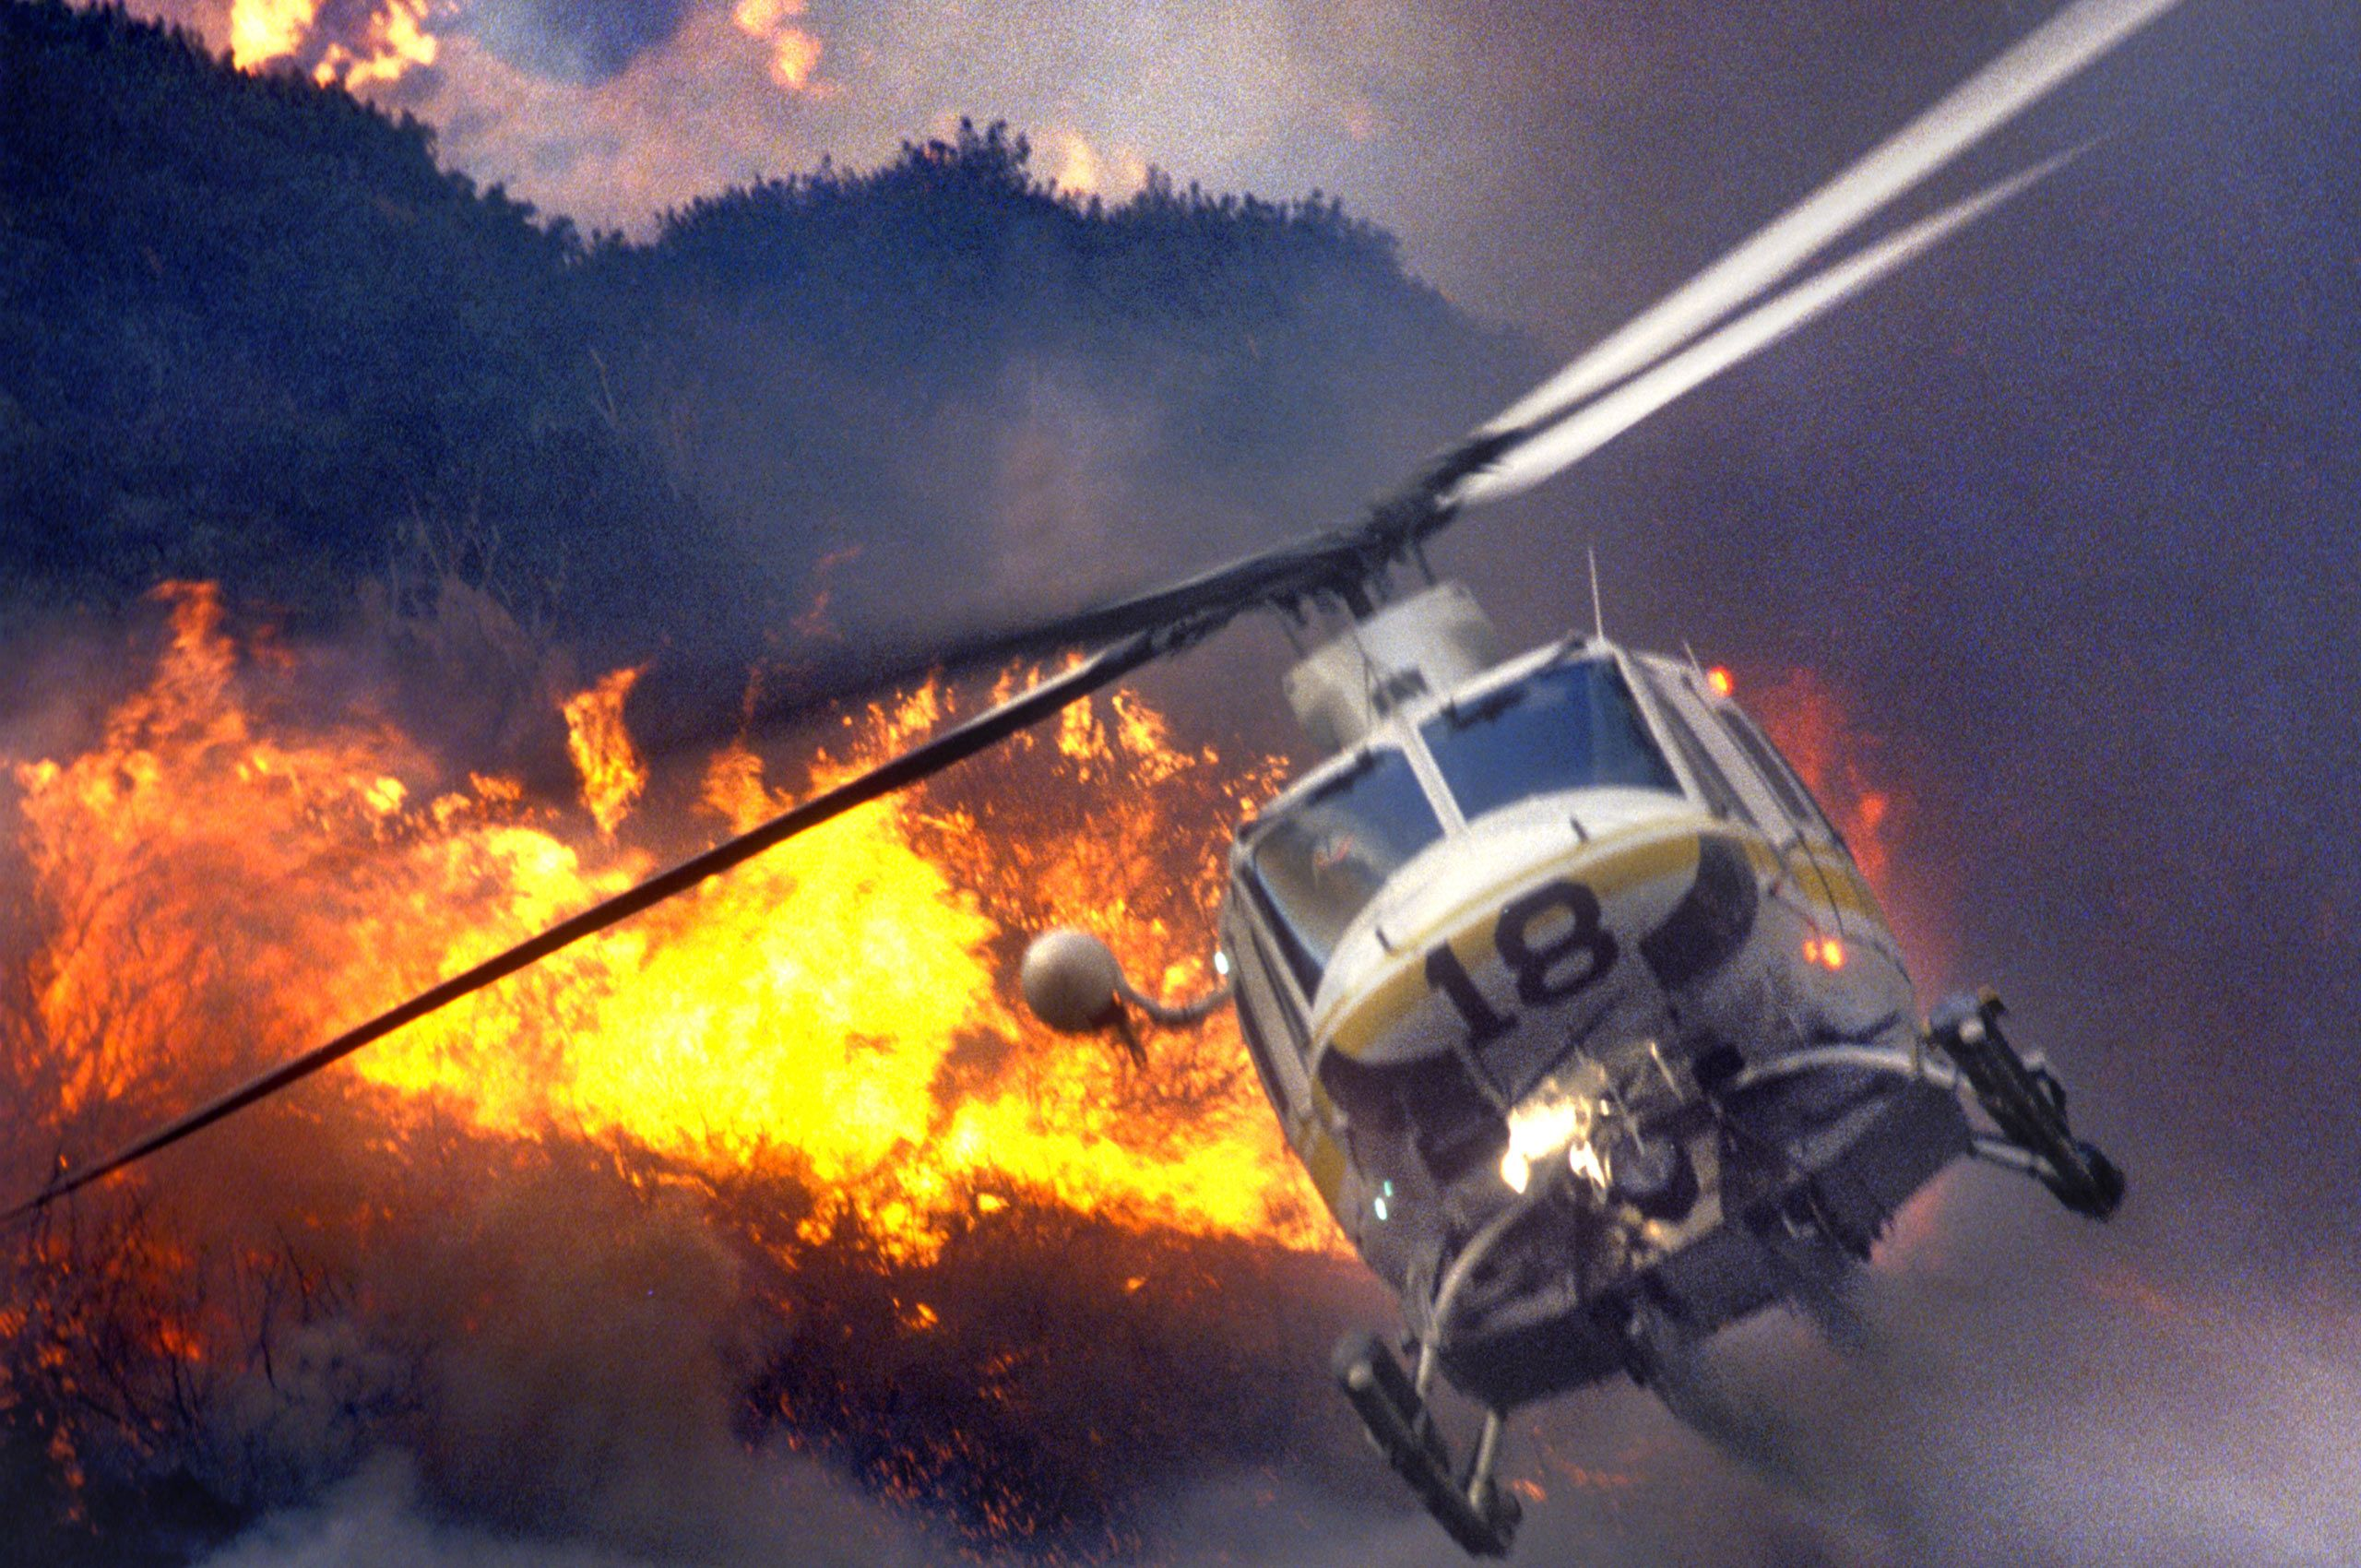 01Helicopter-Drops-Water-on-Malibu-Fire-between-Ridges-November-1993.jpg